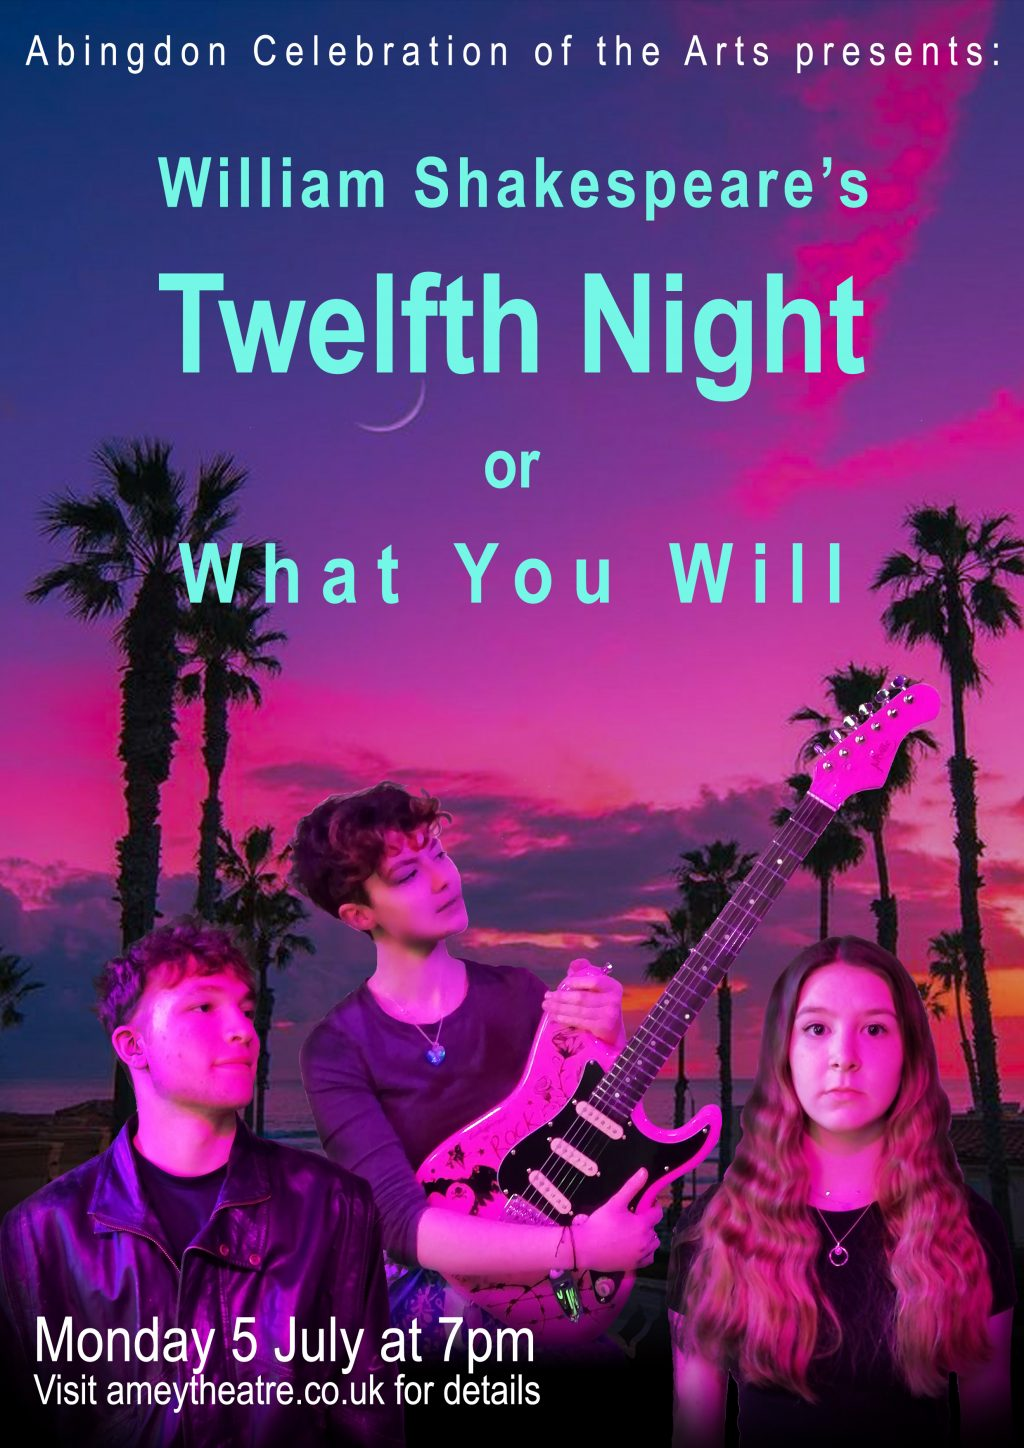 3 students from Abingdon and SHSK schools pose with an electric guitar in front of a pink sunset with palm trees.